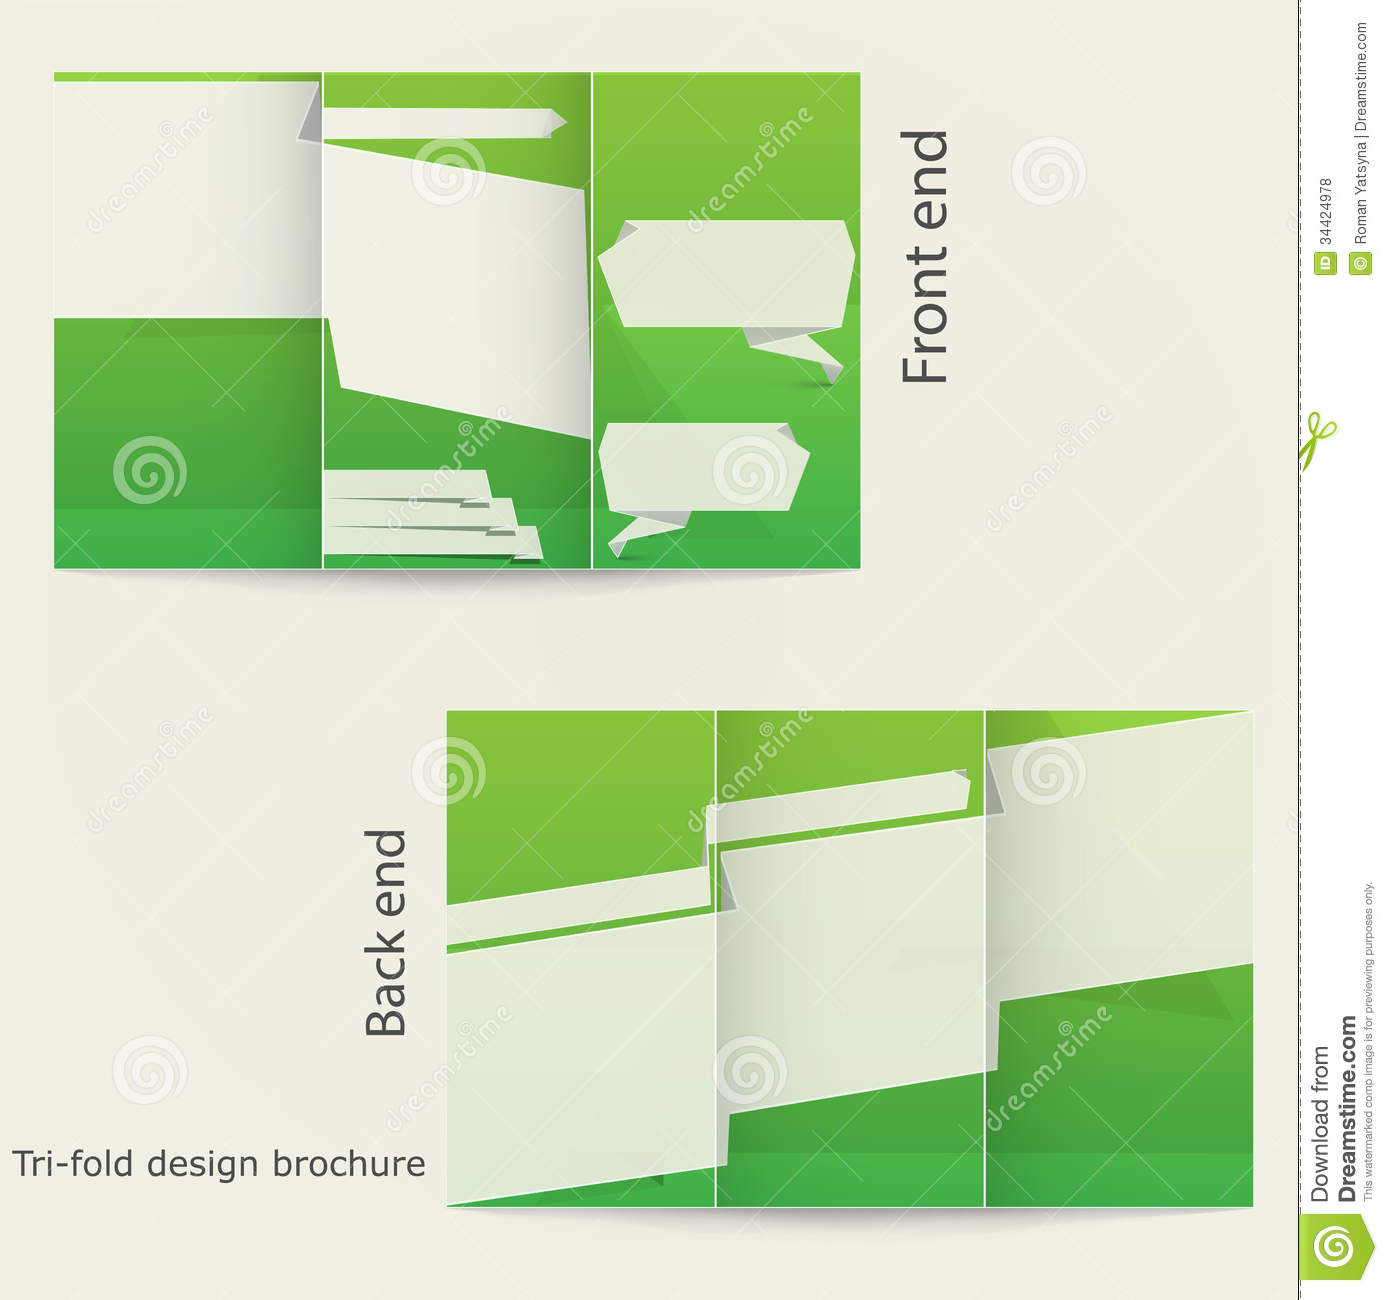 12 tri fold brochure template design images tri fold for Templates for tri fold brochures